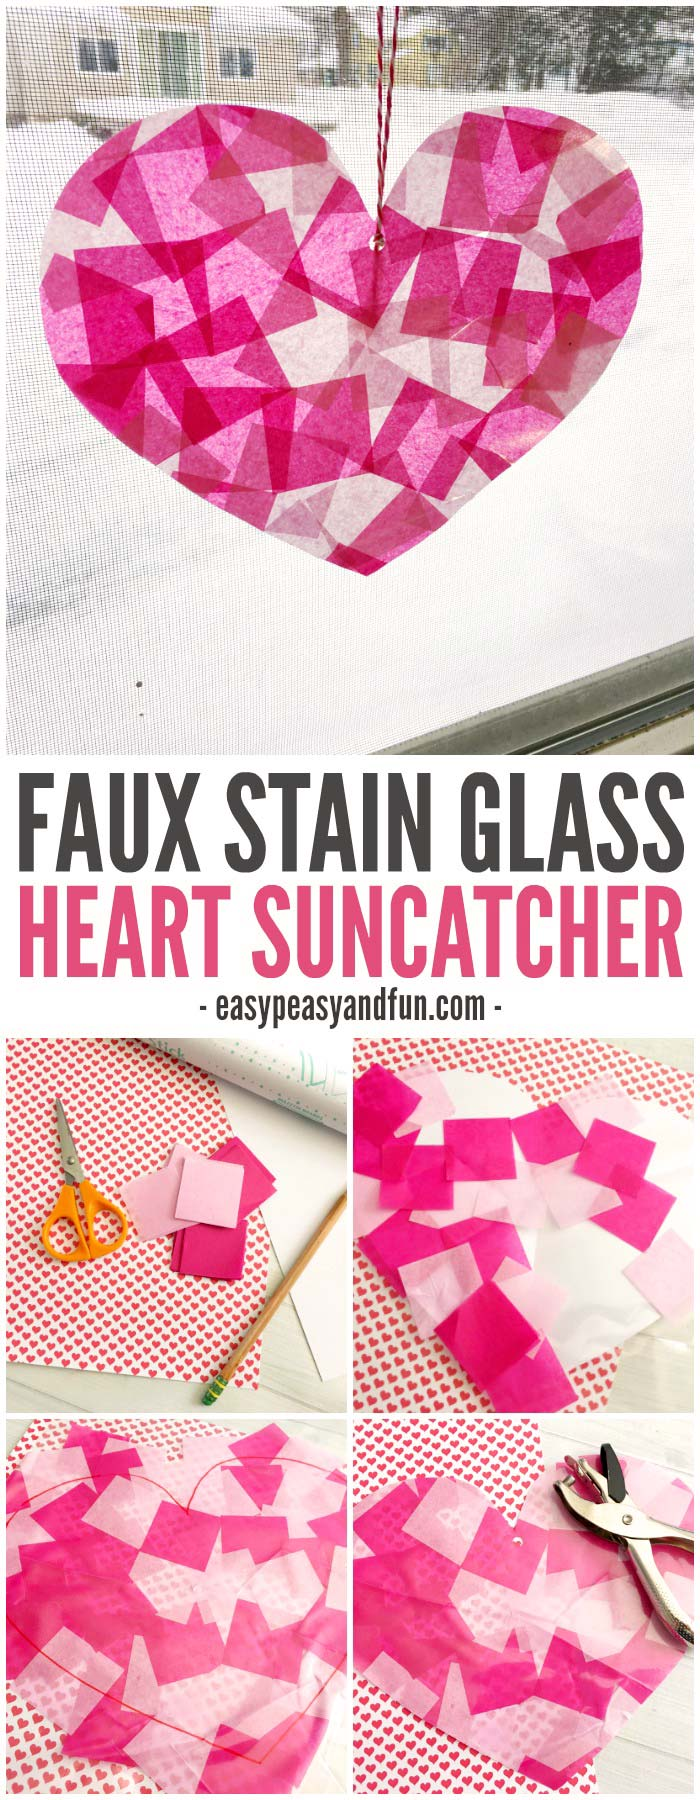 Faux Stain Glass Heart Suncatcher Craft